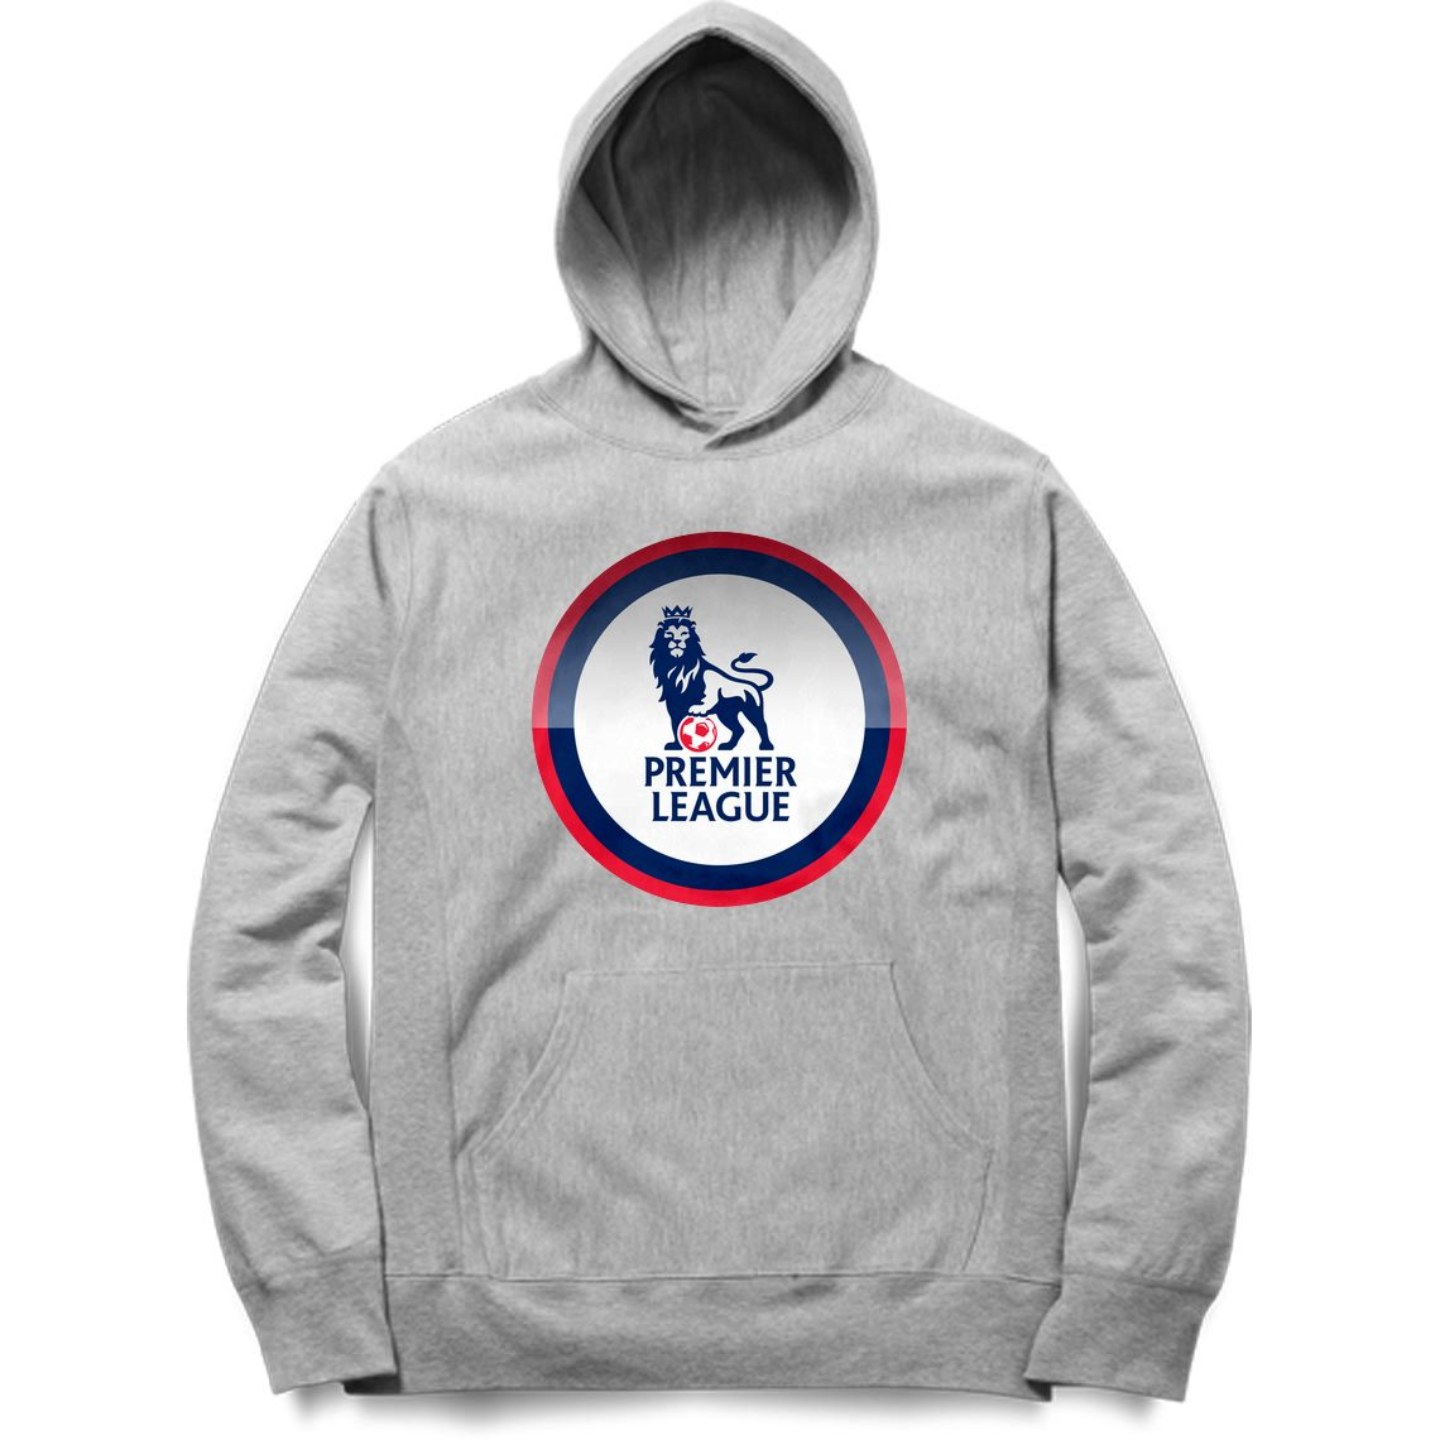 The English Premier League Hoodie